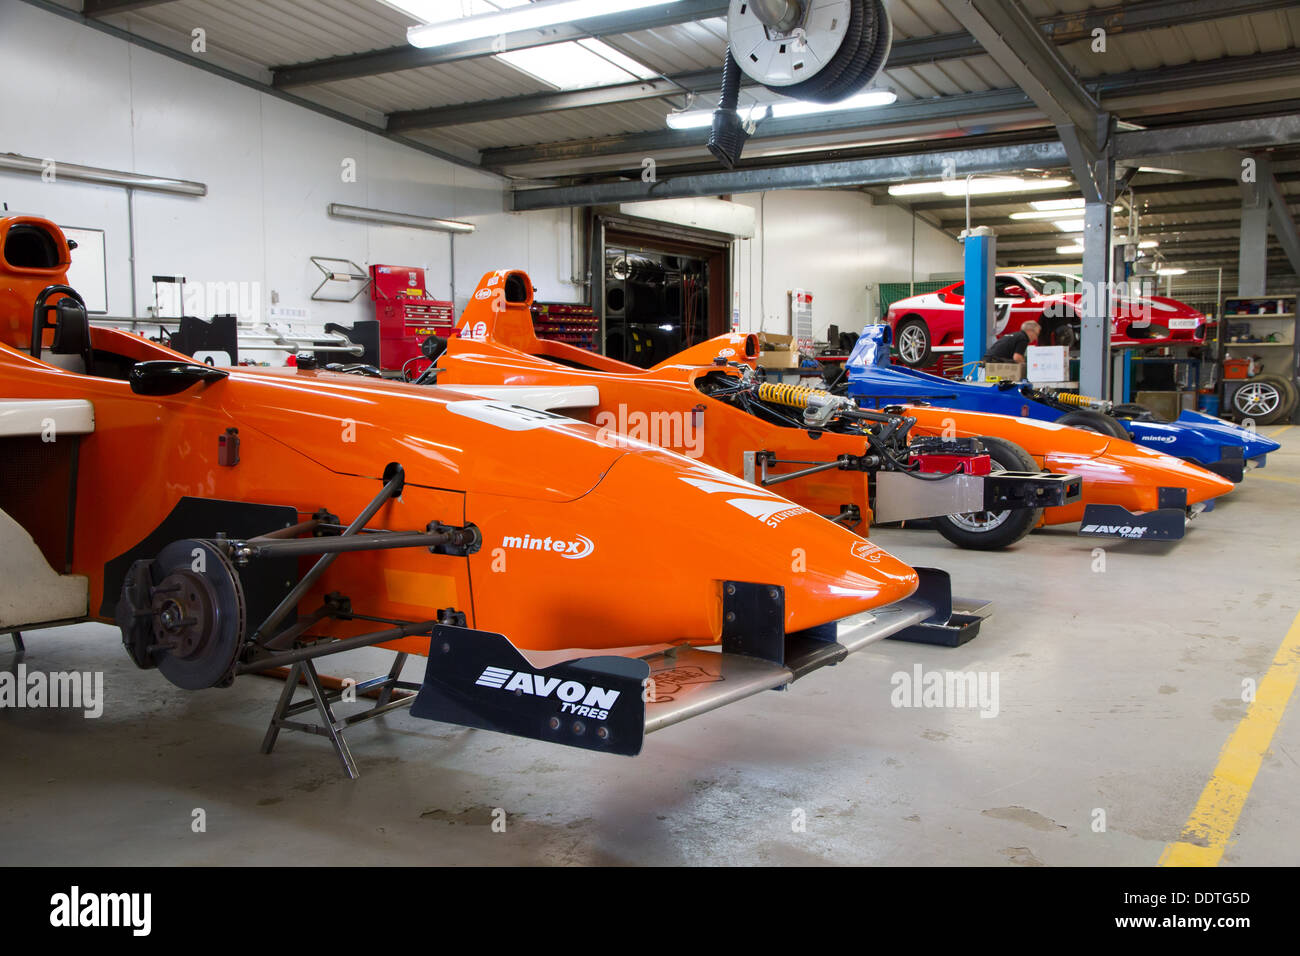 Formula Silverstone single seater racing cars in the garage, used ...